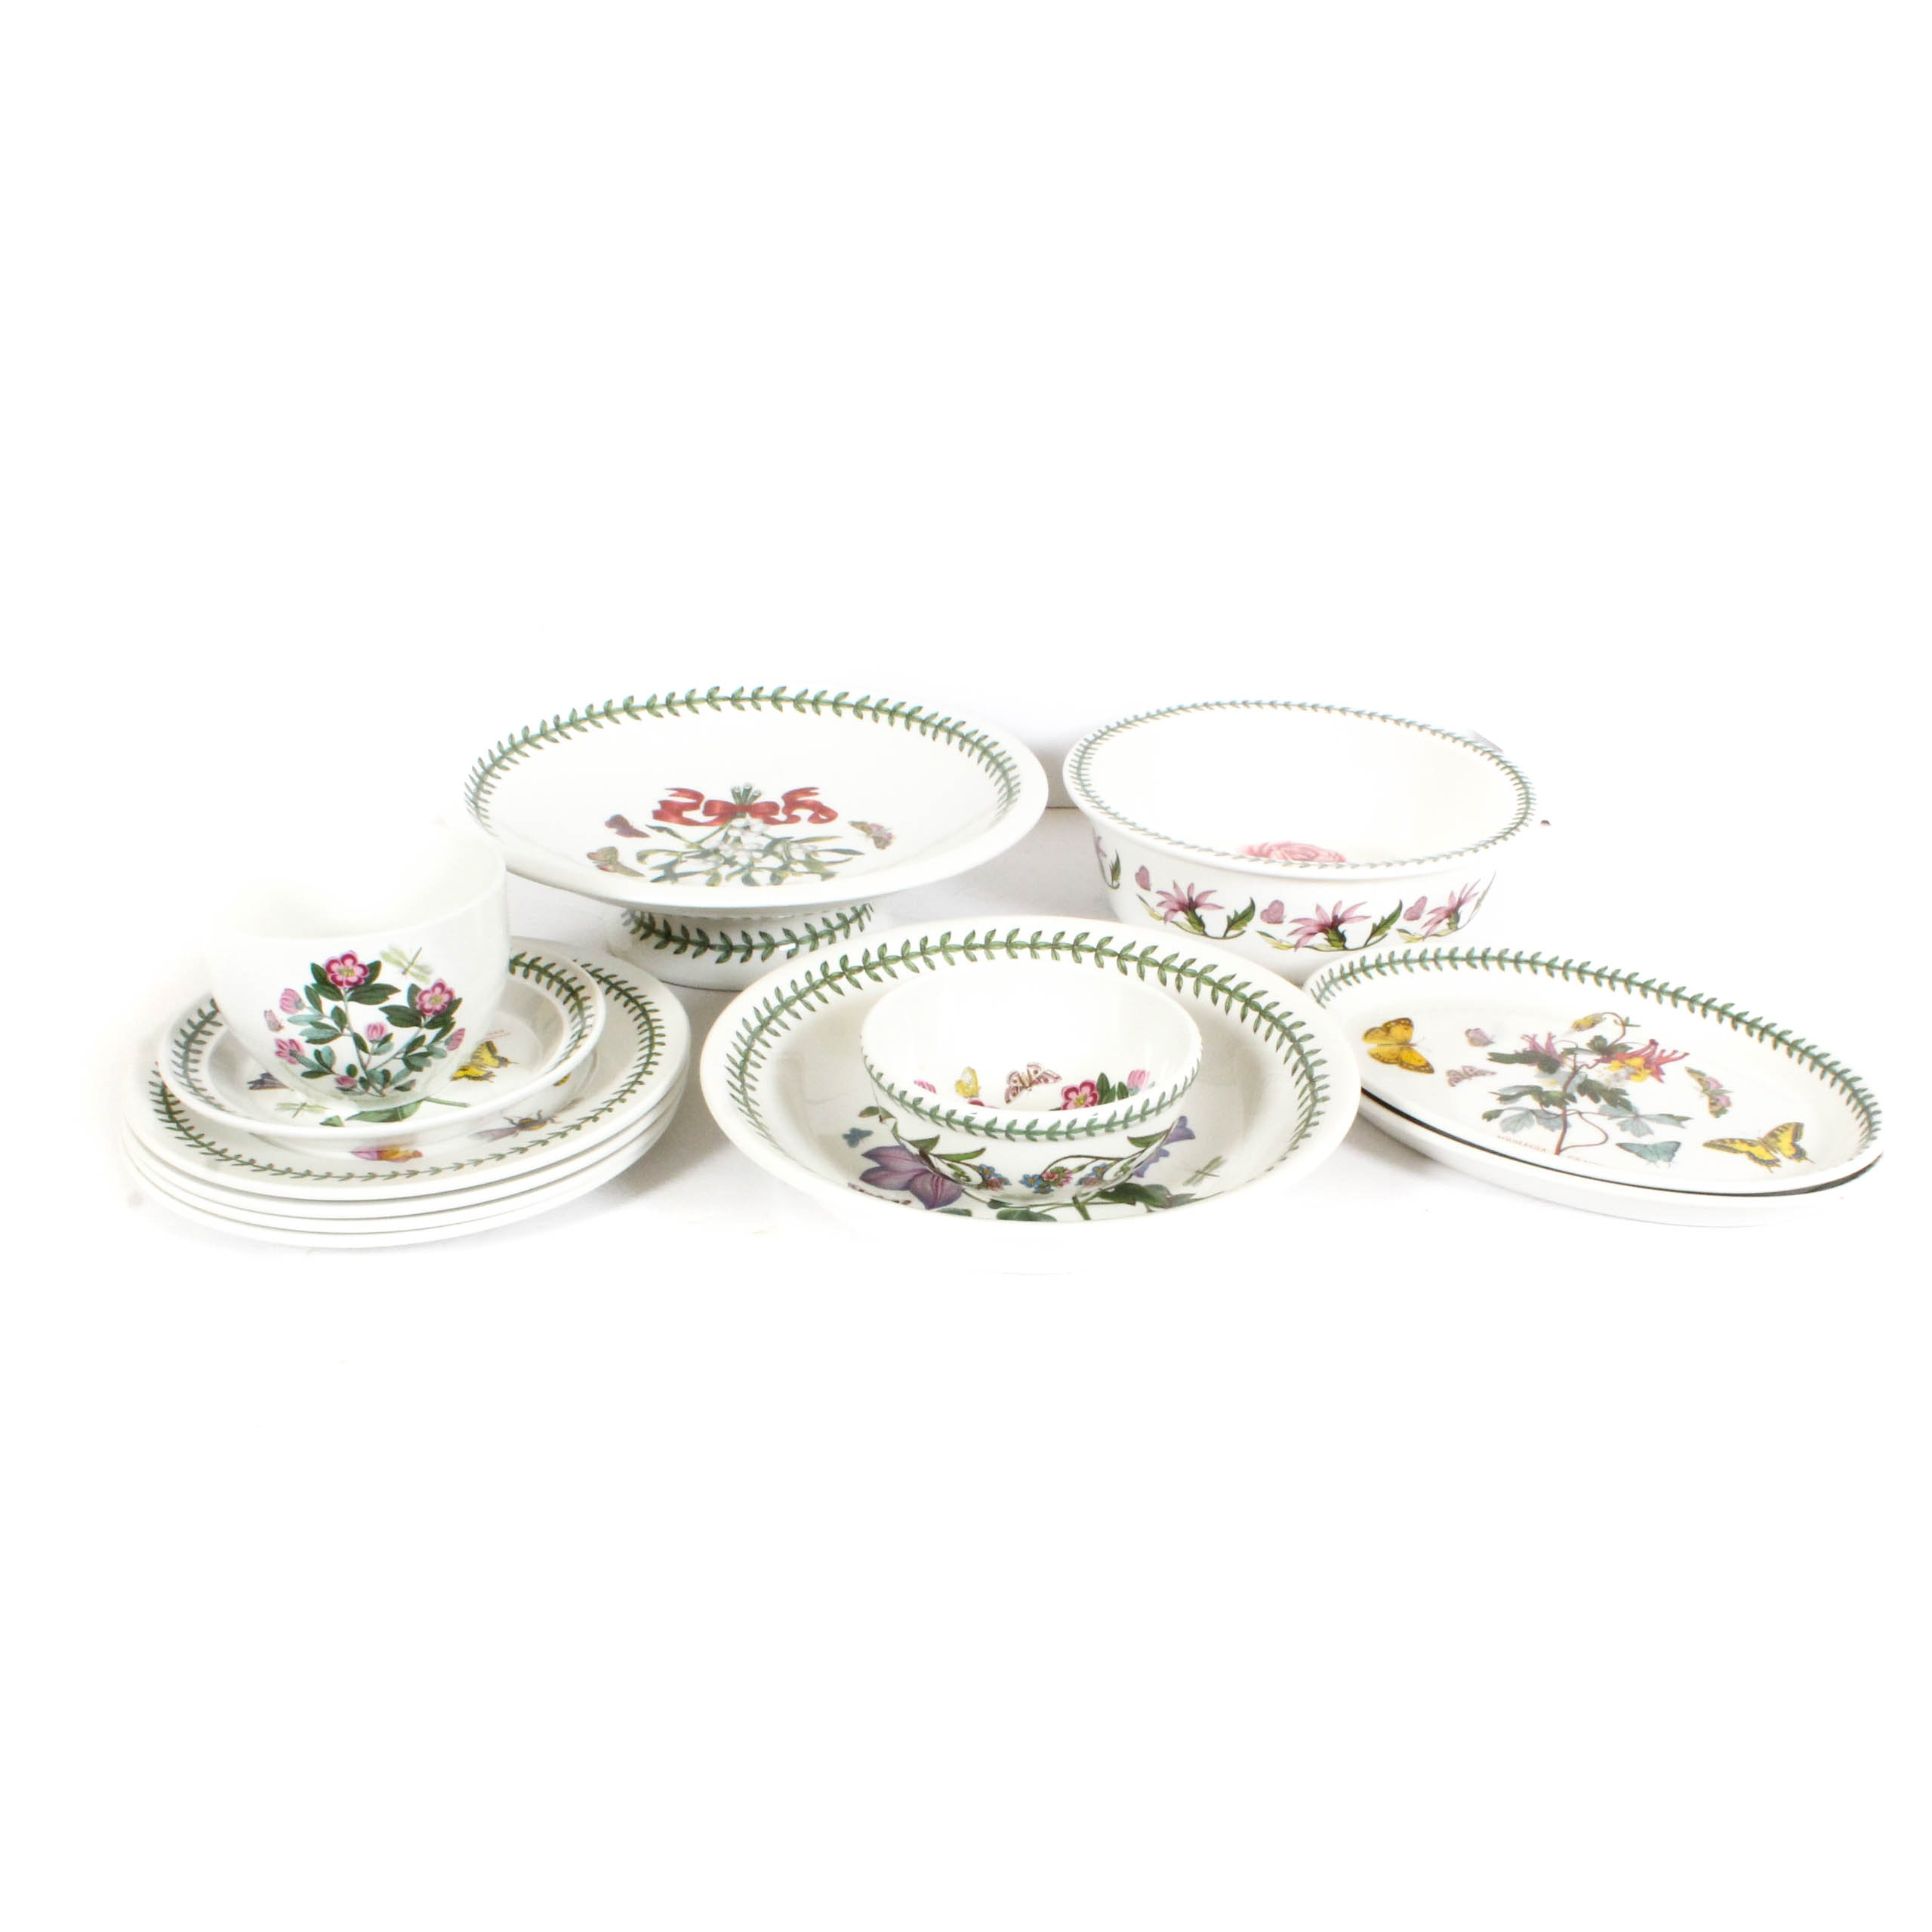 "Portmeirion ""The Botanic Garden"" Ceramic Tableware"